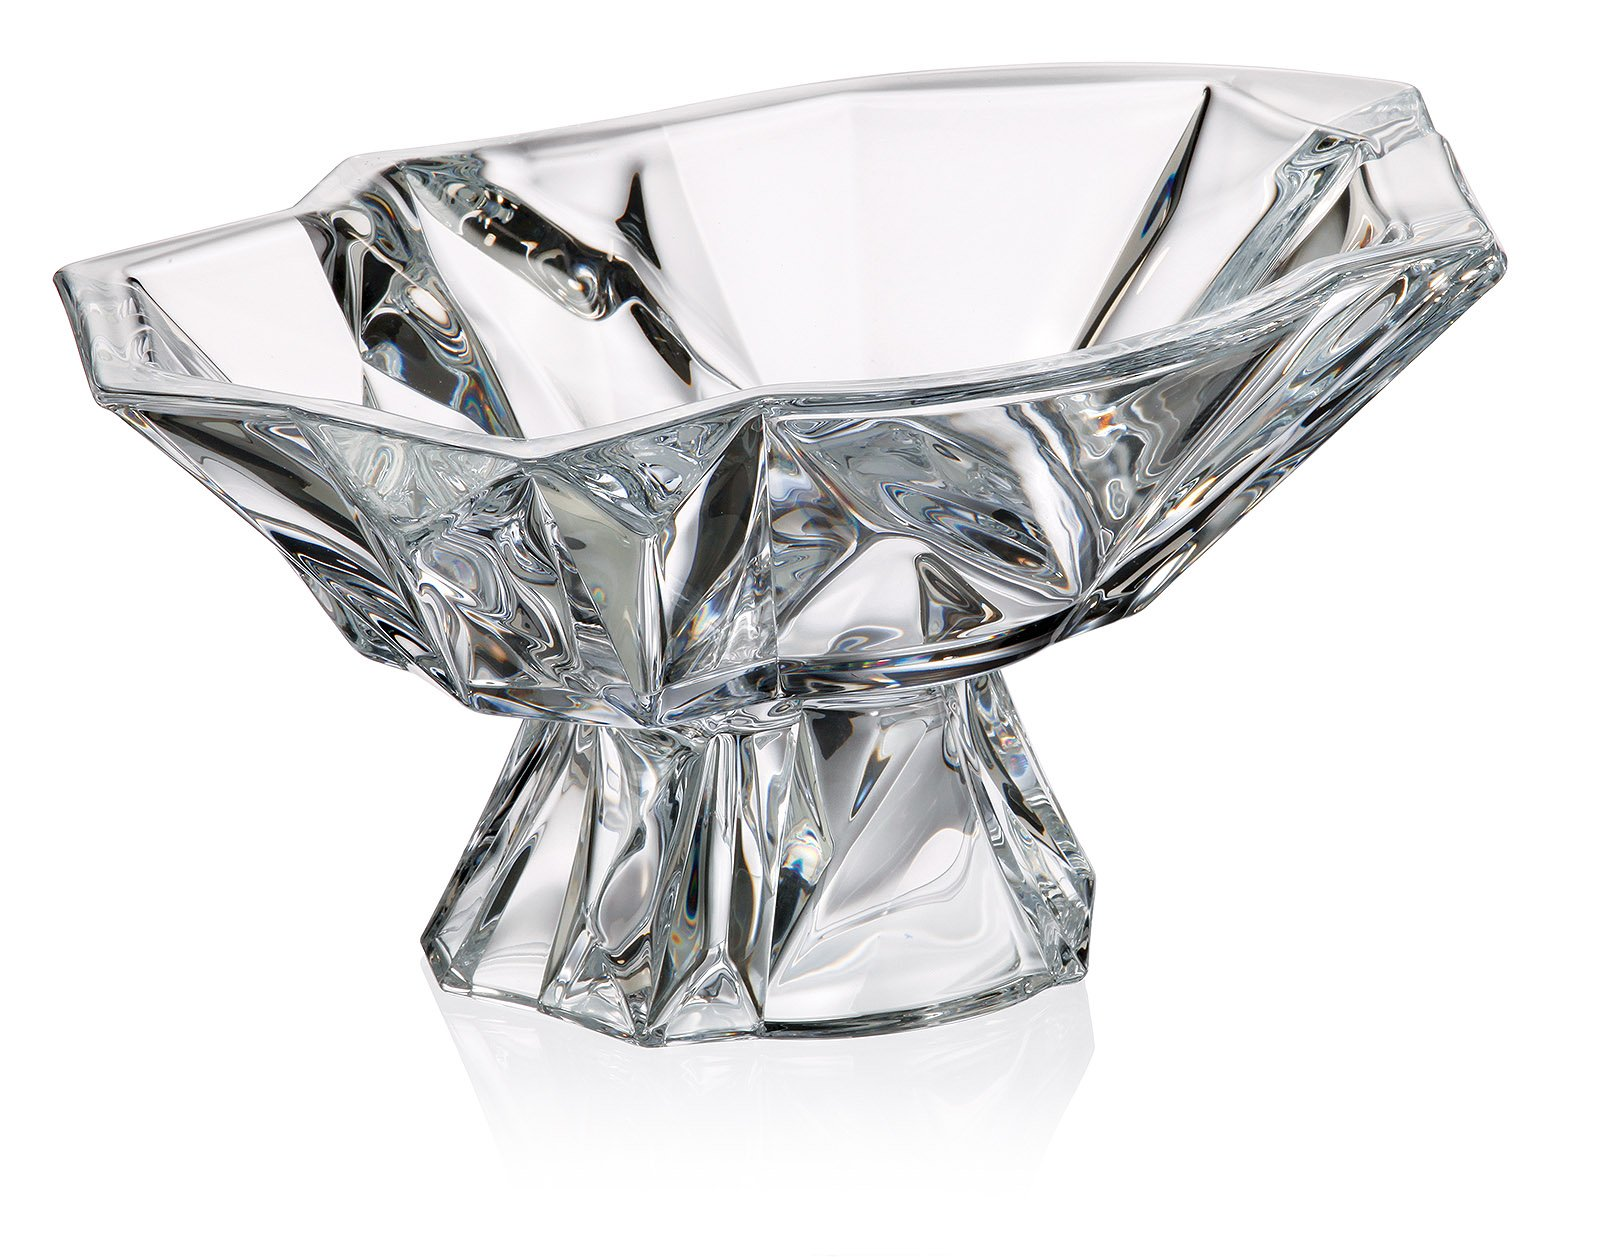 Bohemia Crystal Large Footed Bowl ''Angle'', 13'' Dia Decorative Crystal Deep Wedding Gift Bowl on a Stem, Elegant Centerpiece Candies Fruit Bowl + Special Gift Figurine